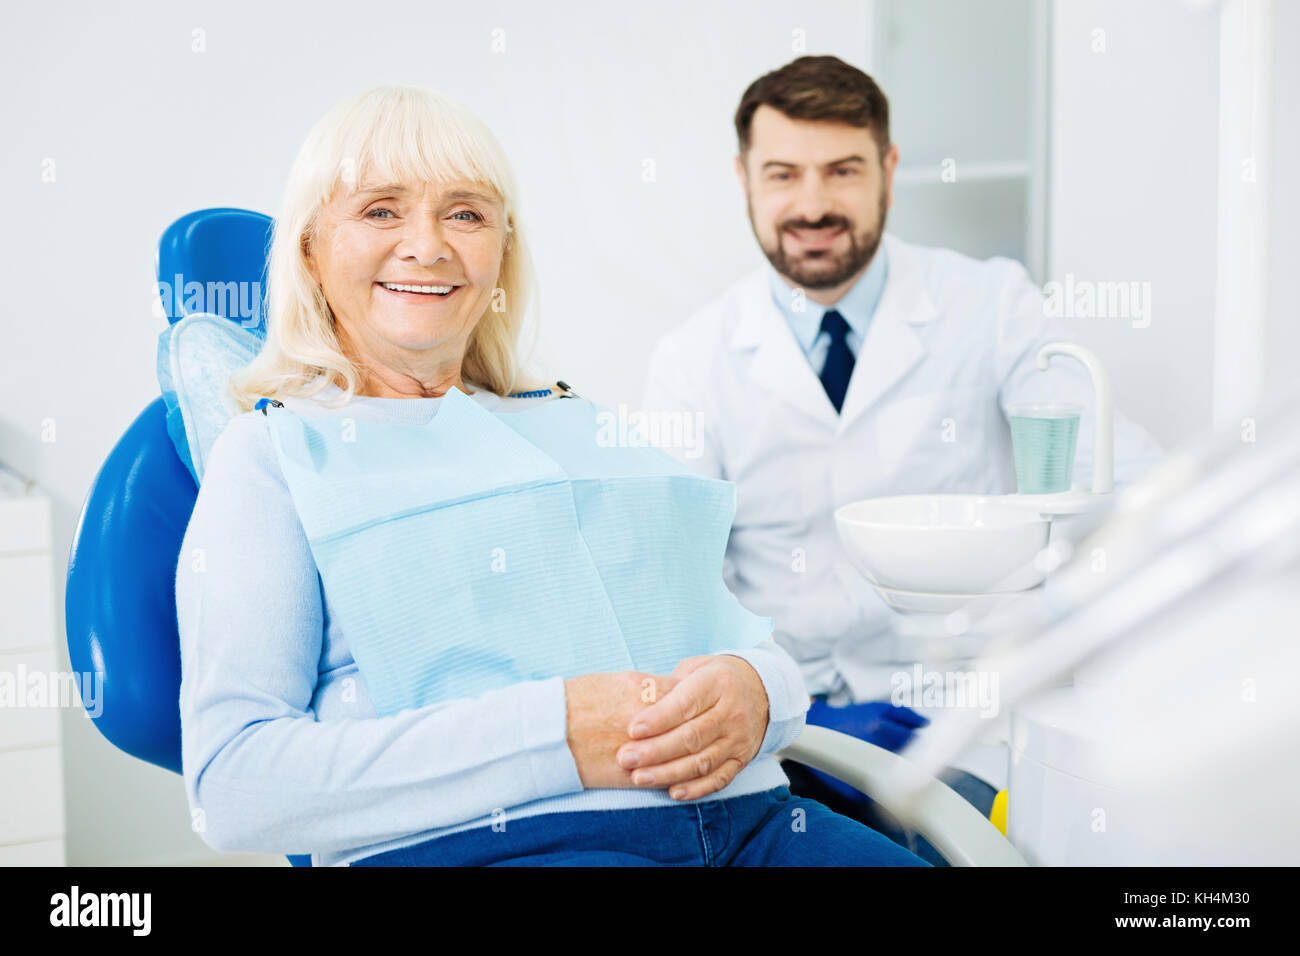 Pleased woman sitting on dental chair - Stock Image